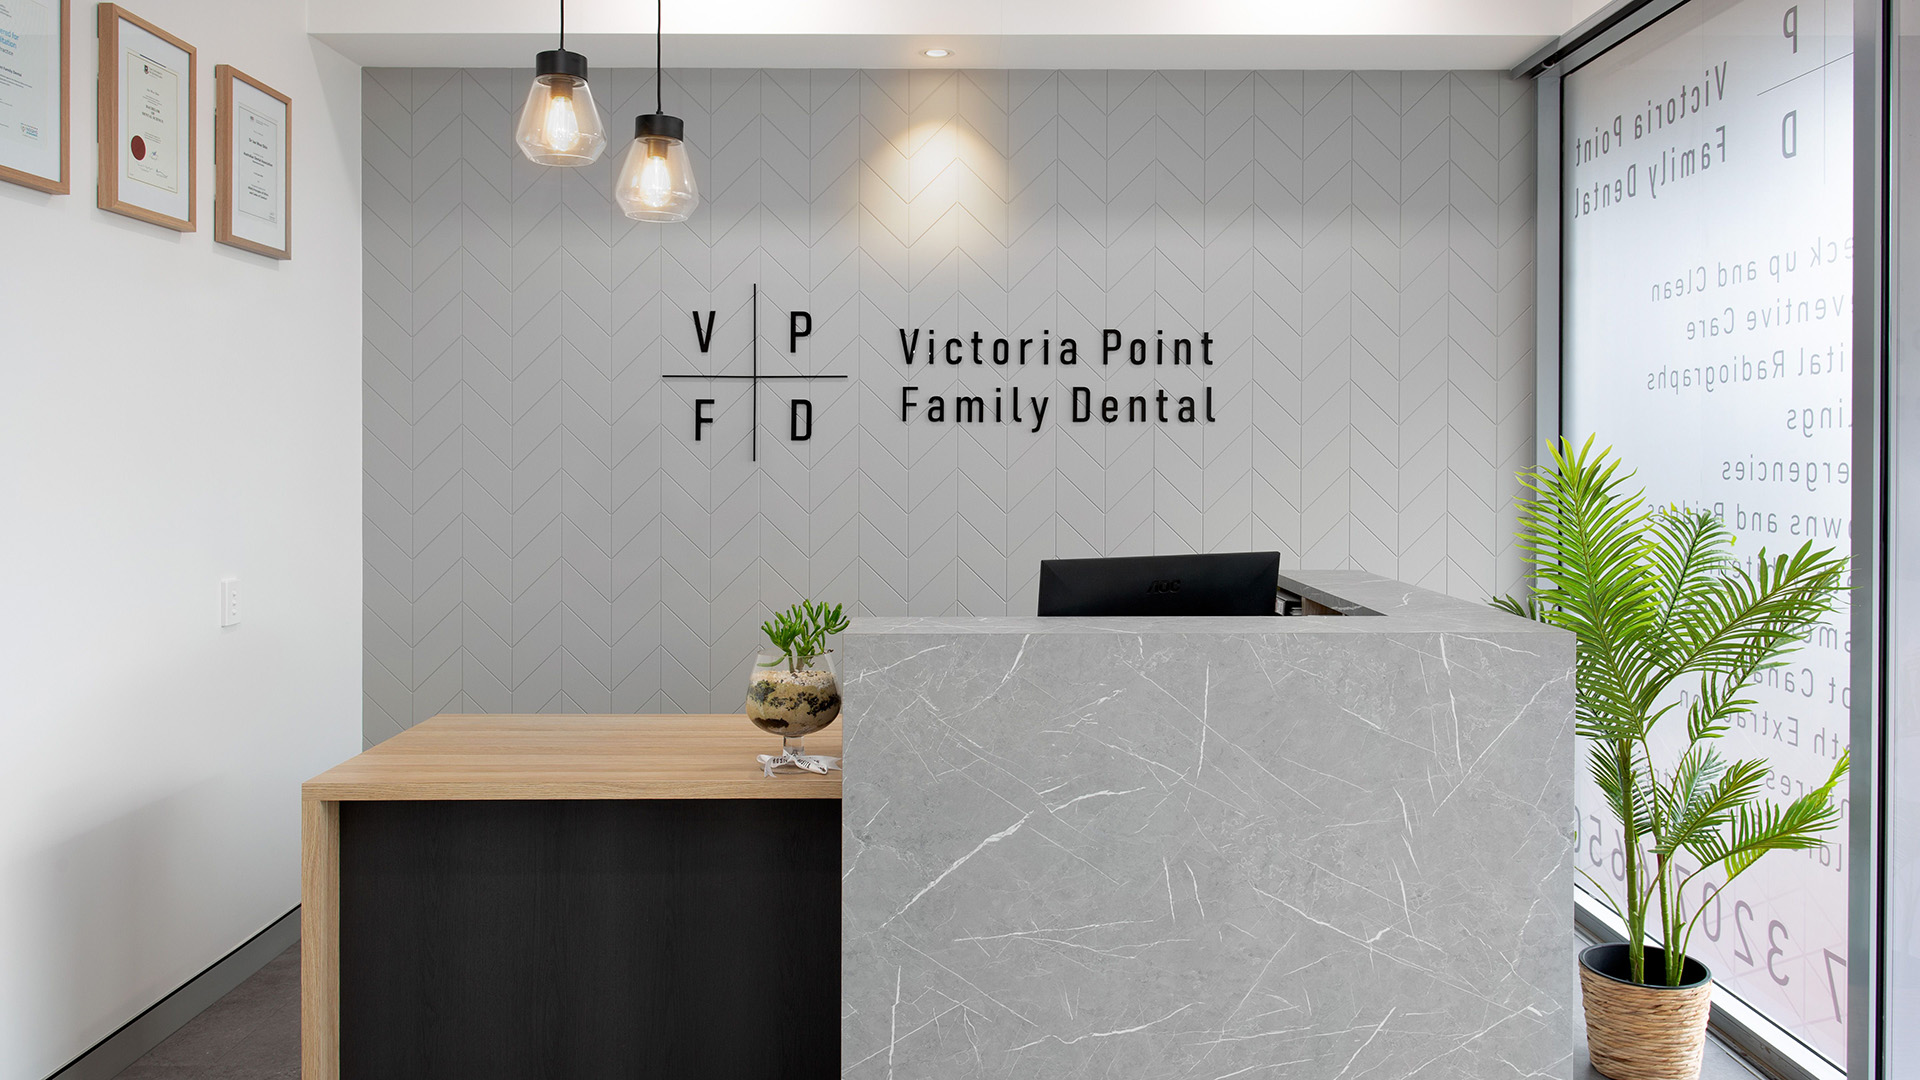 victoria point family dental, dentifit